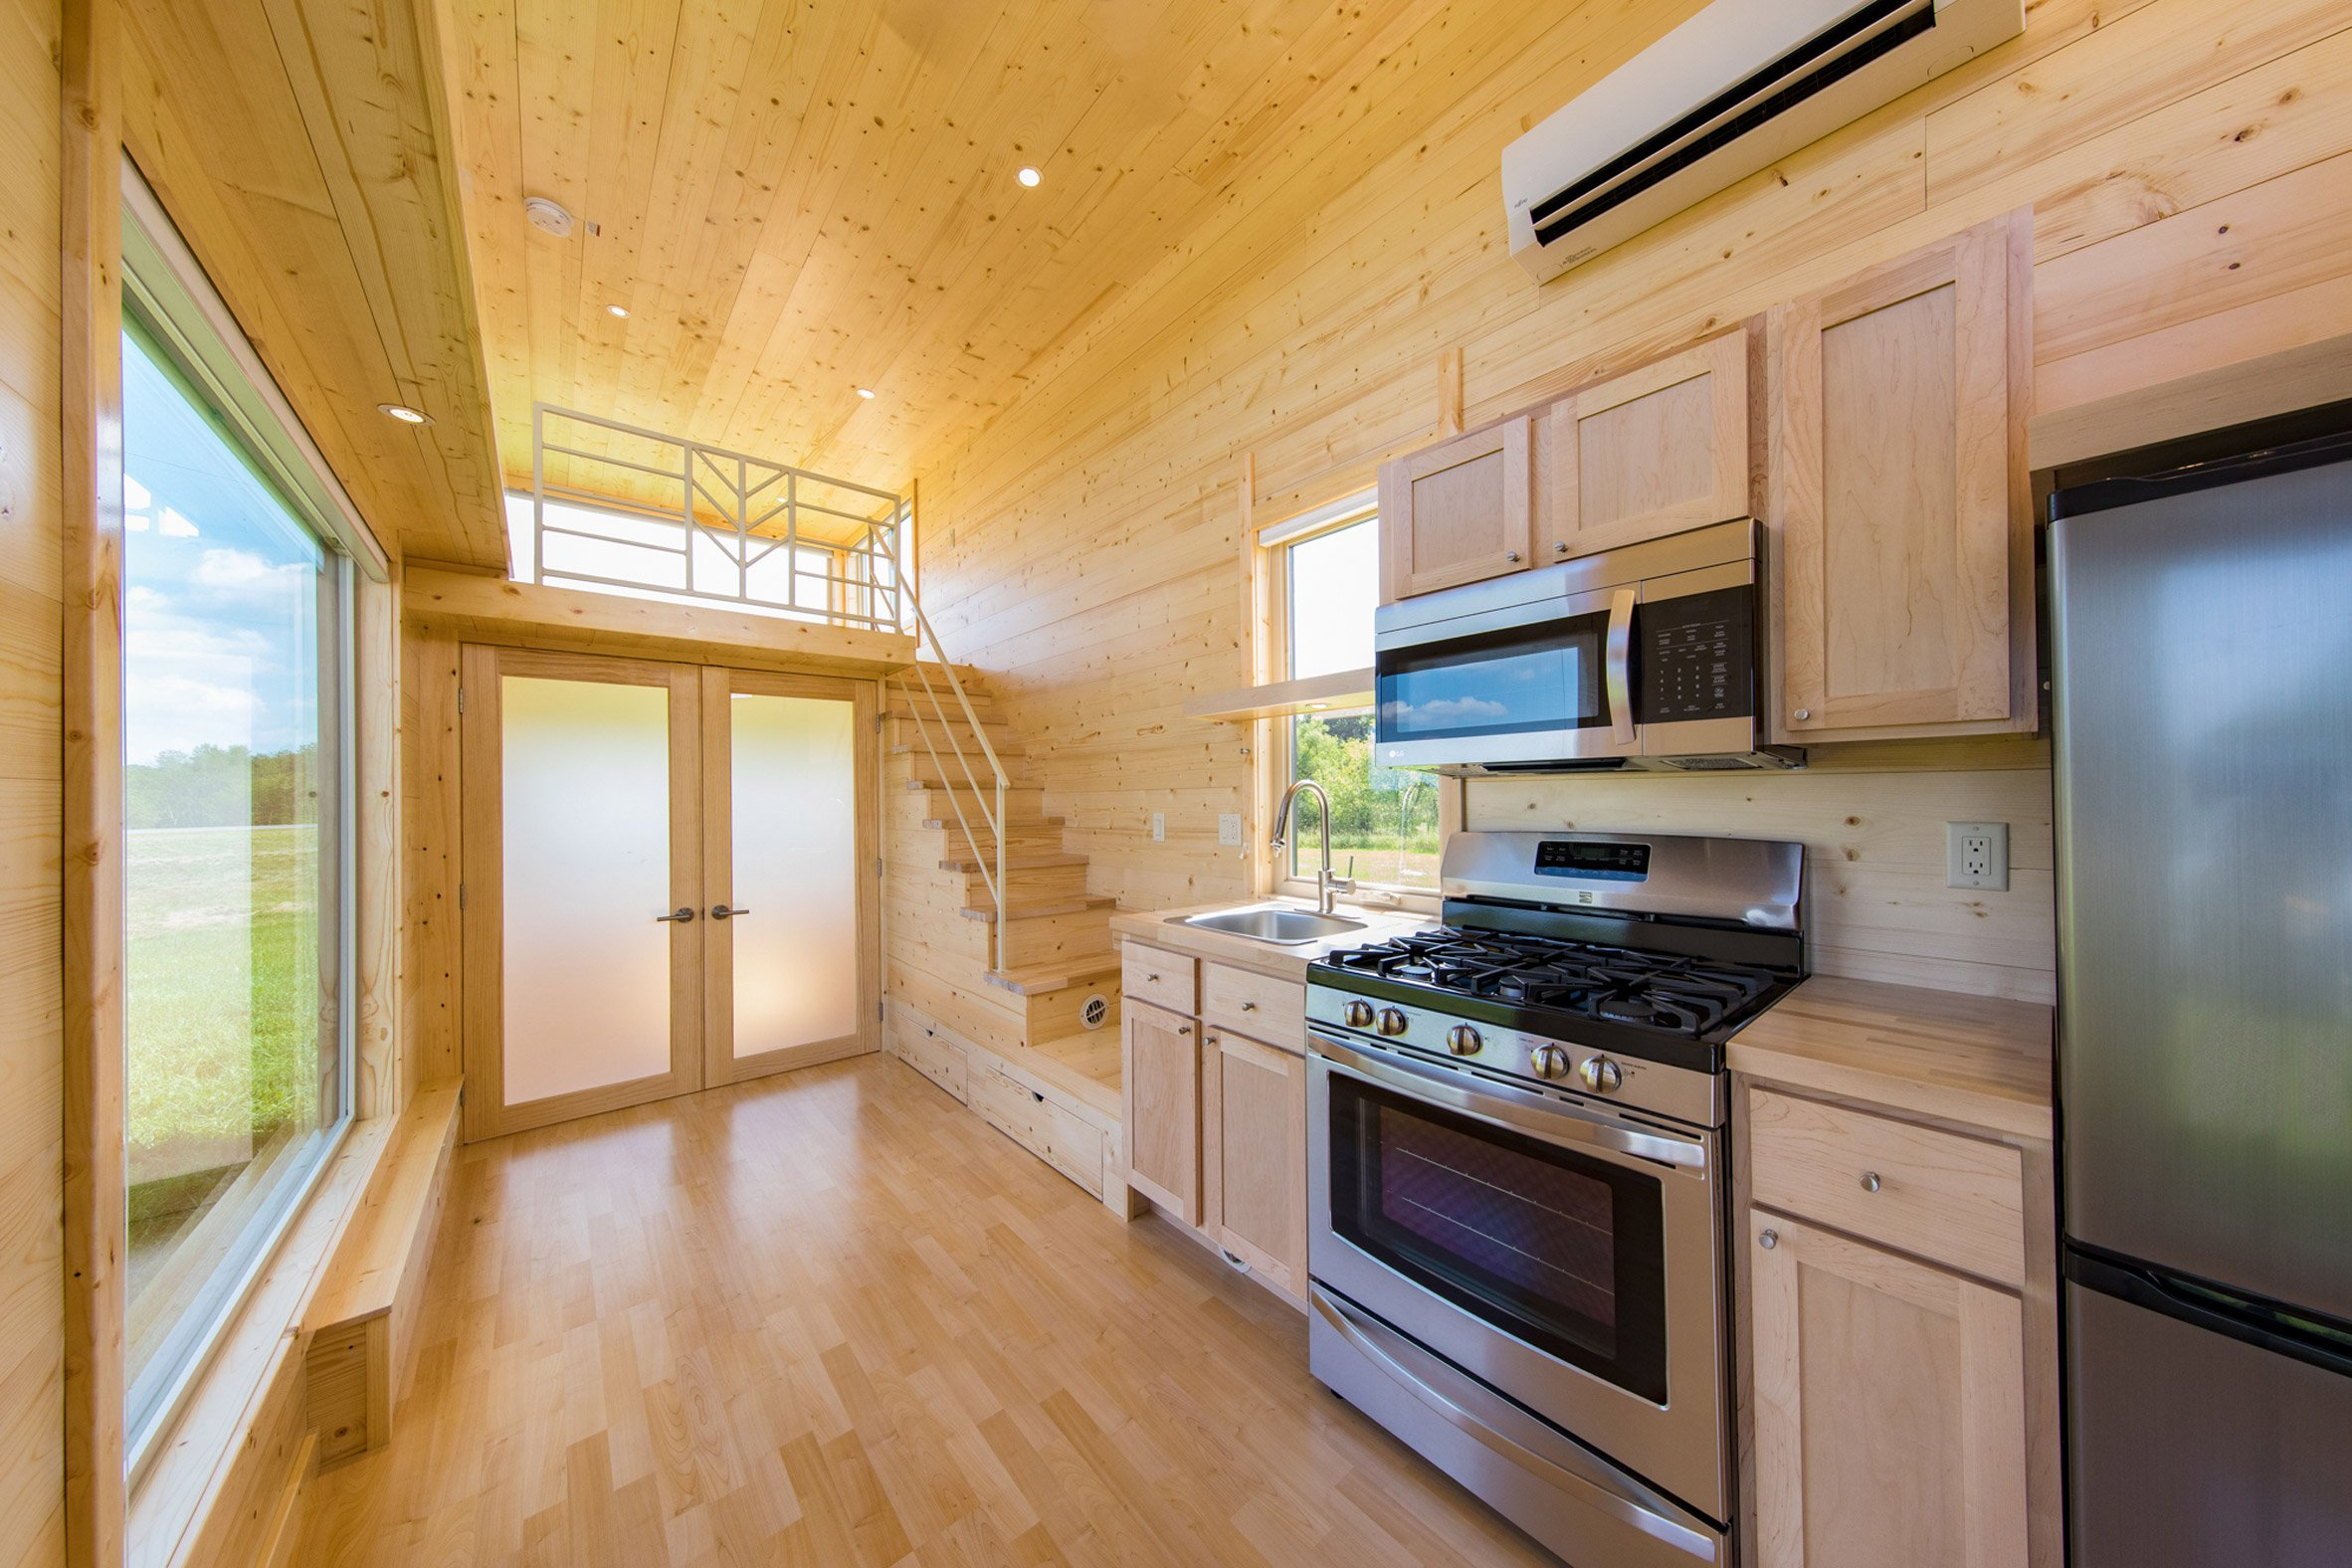 Escape One XL is a two-storey micro home on wheels